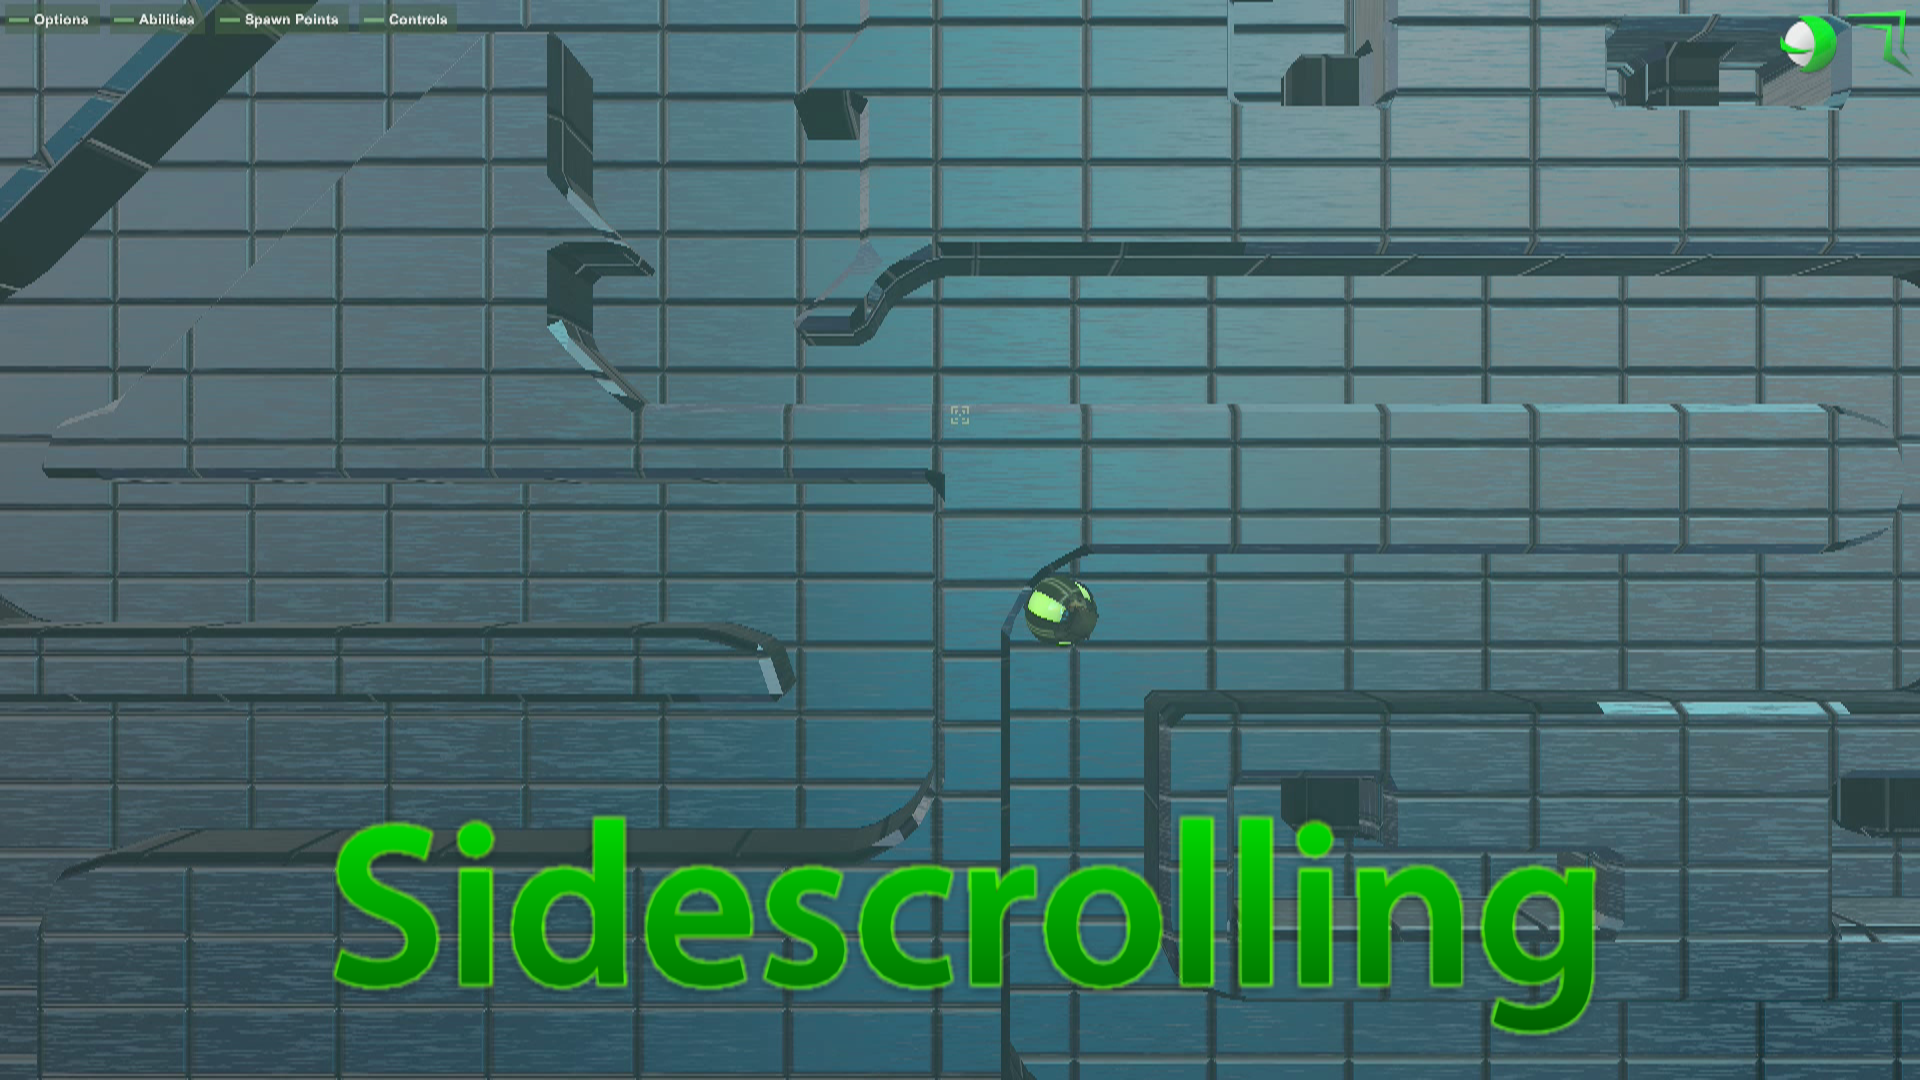 Sidescrolling